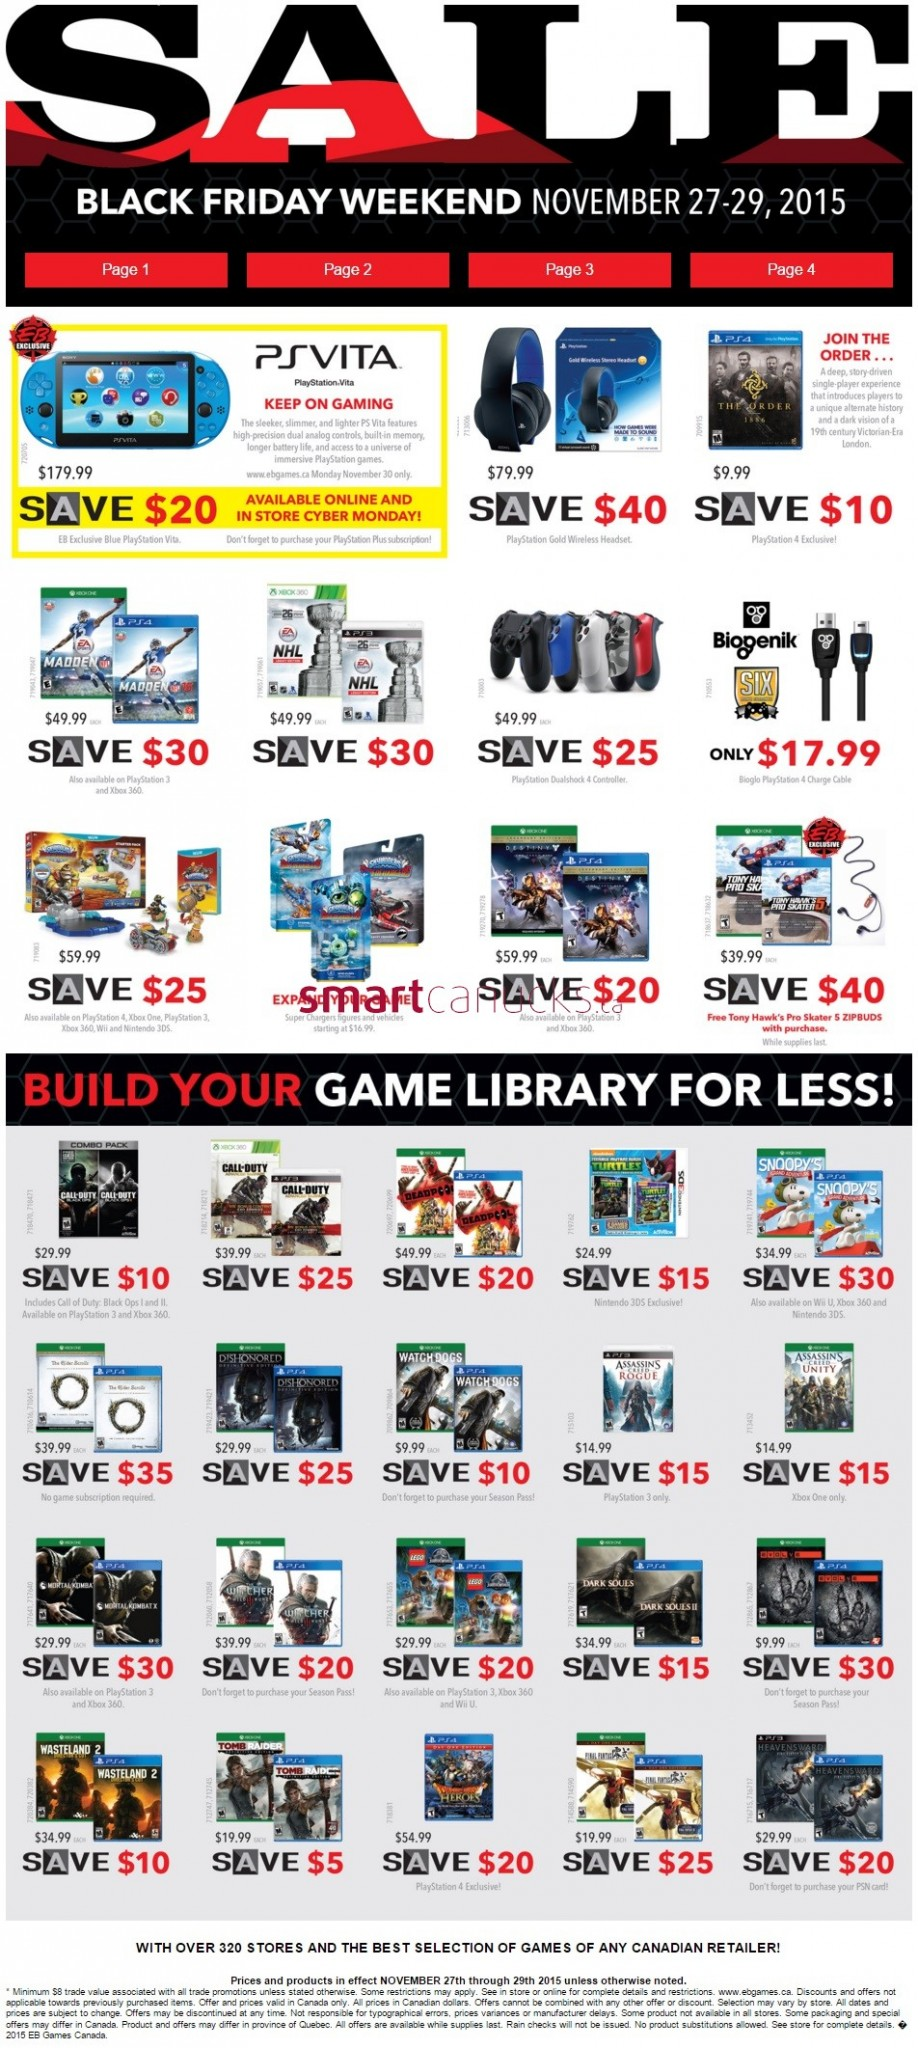 Here you can find the latest EB Games voucher codes